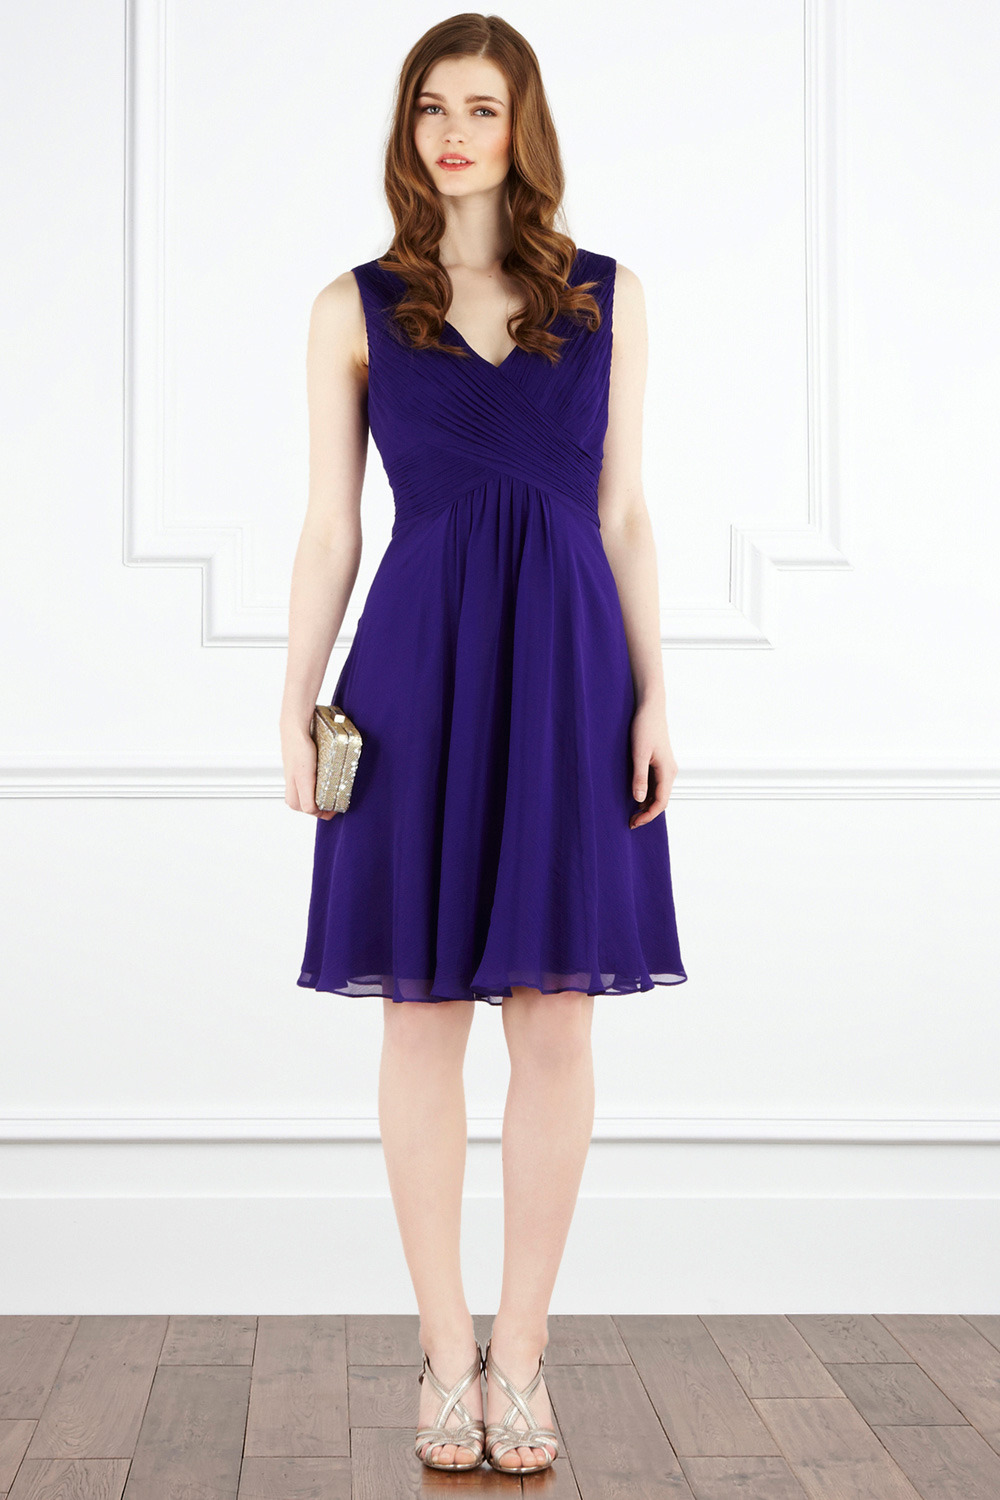 Almondo Dress - style: shift; neckline: v-neck; pattern: plain; sleeve style: sleeveless; waist detail: fitted waist; back detail: low cut/open back; bust detail: ruching/gathering/draping/layers/pintuck pleats at bust; predominant colour: purple; occasions: evening, occasion; length: on the knee; fit: body skimming; fibres: silk - 100%; material texture: chiffon; hip detail: ruching/gathering at hip, soft pleats at hip/draping at hip/flared at hip; trends: aquatic; sleeve length: sleeveless; texture group: sheer fabrics/chiffon/organza etc.; pattern type: fabric; pattern size: standard